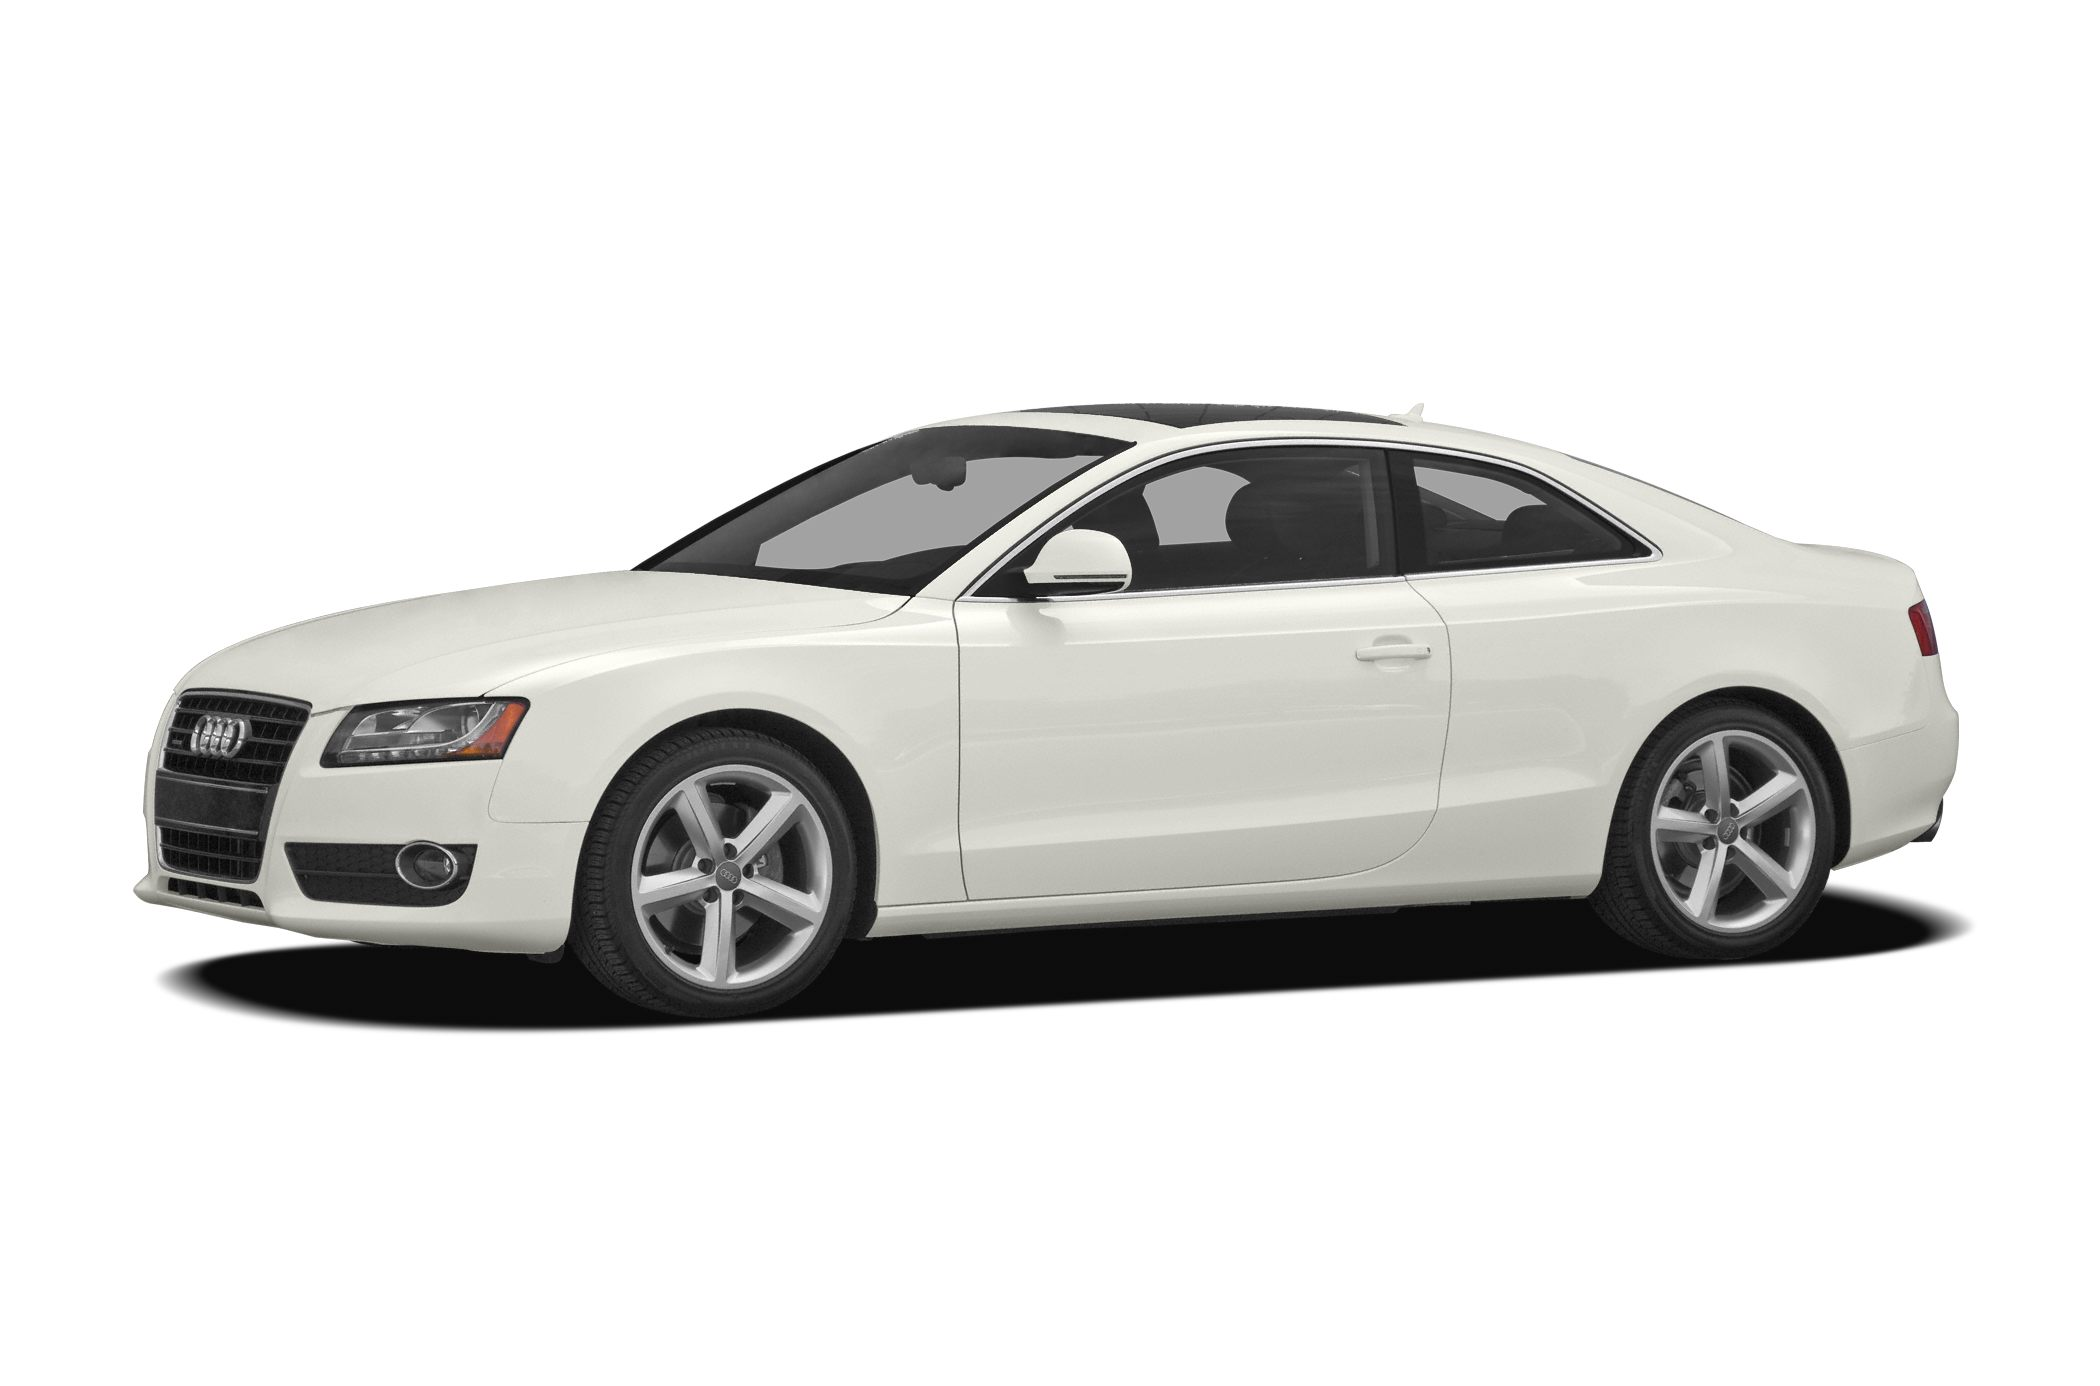 2009 Audi A5 32 quattro Here at Lake Keowee Ford our customers come first and our prices will not